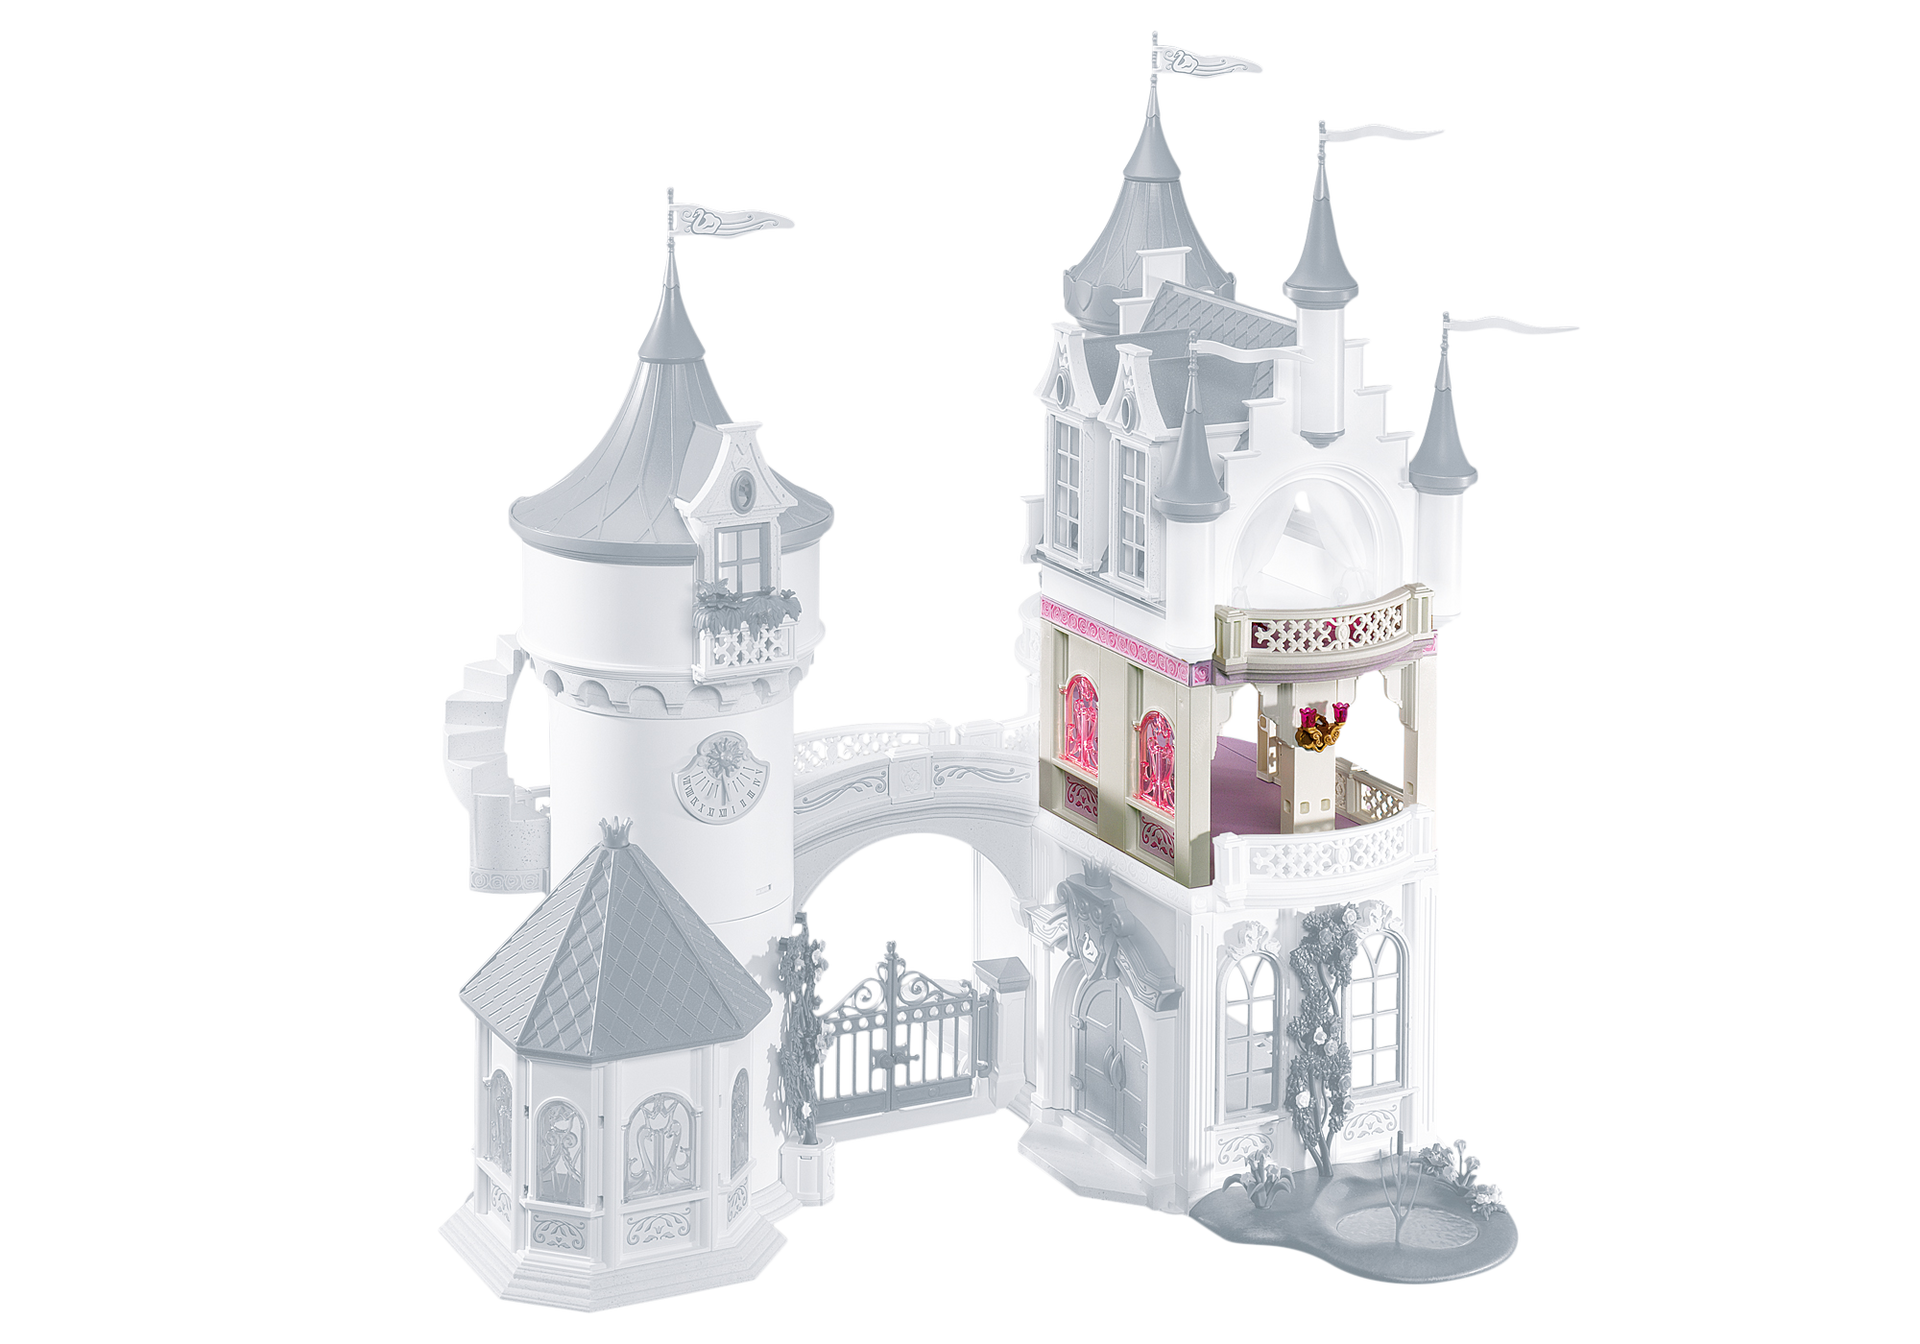 Extension for princess fantasy castle 5142 6236 for Chateau princesse playmobil 5142